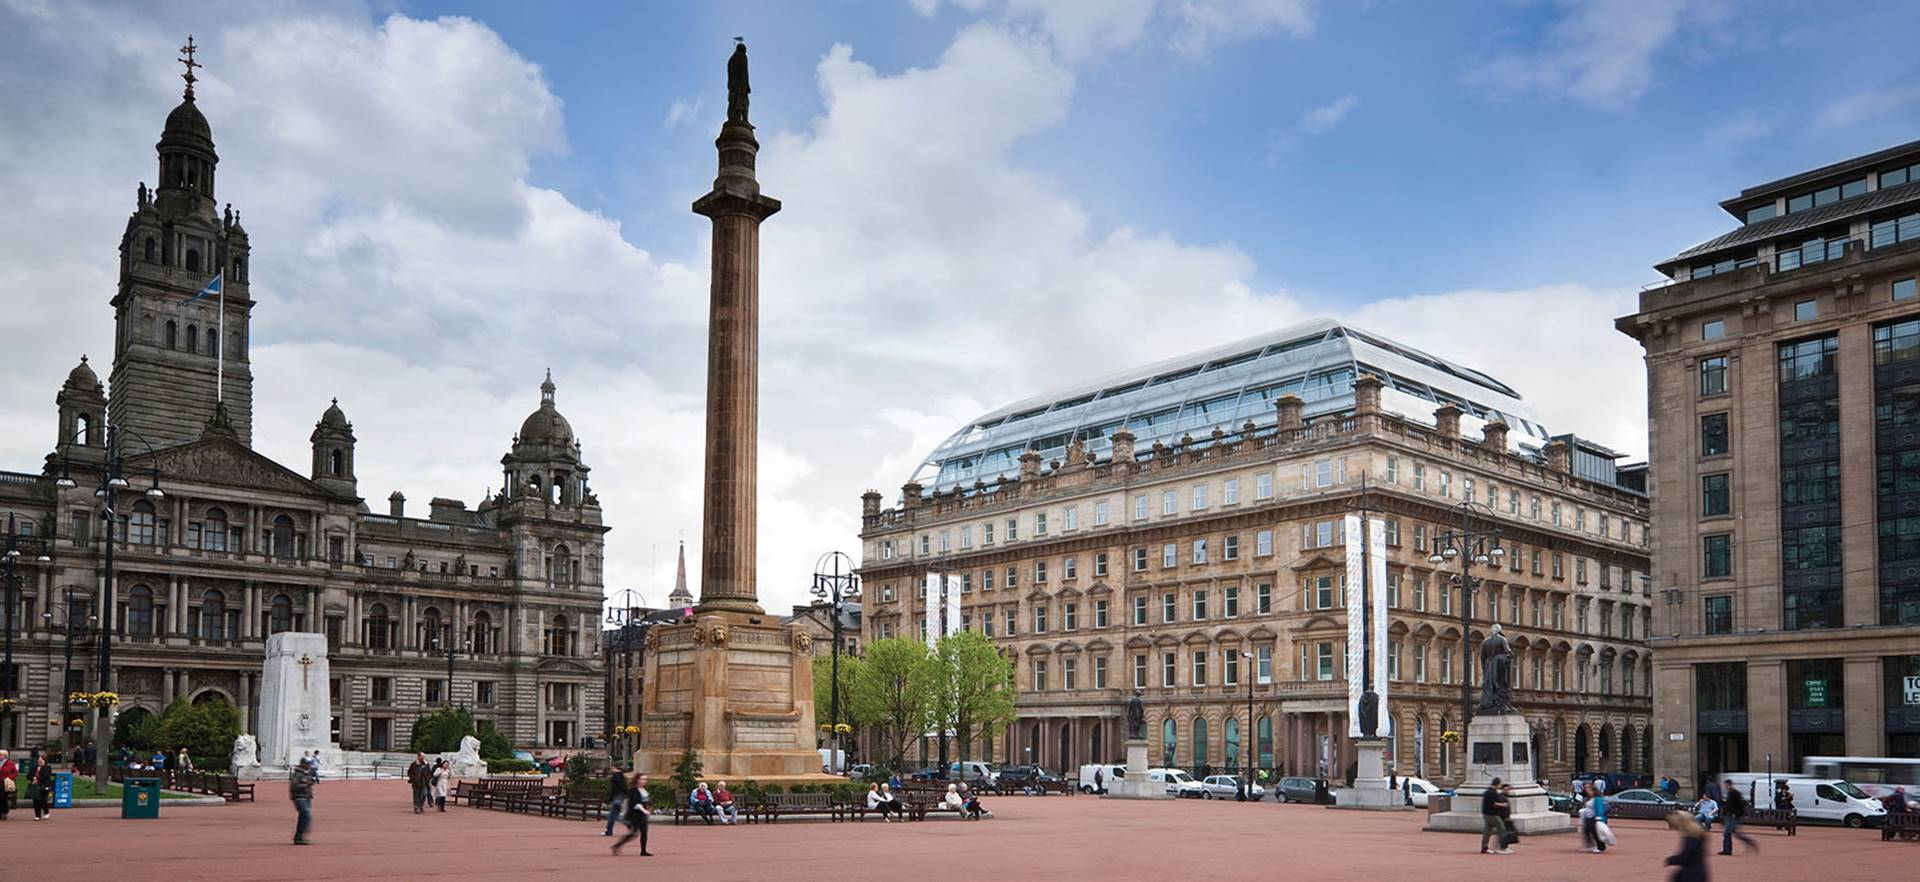 G1 George Square, Glasgow